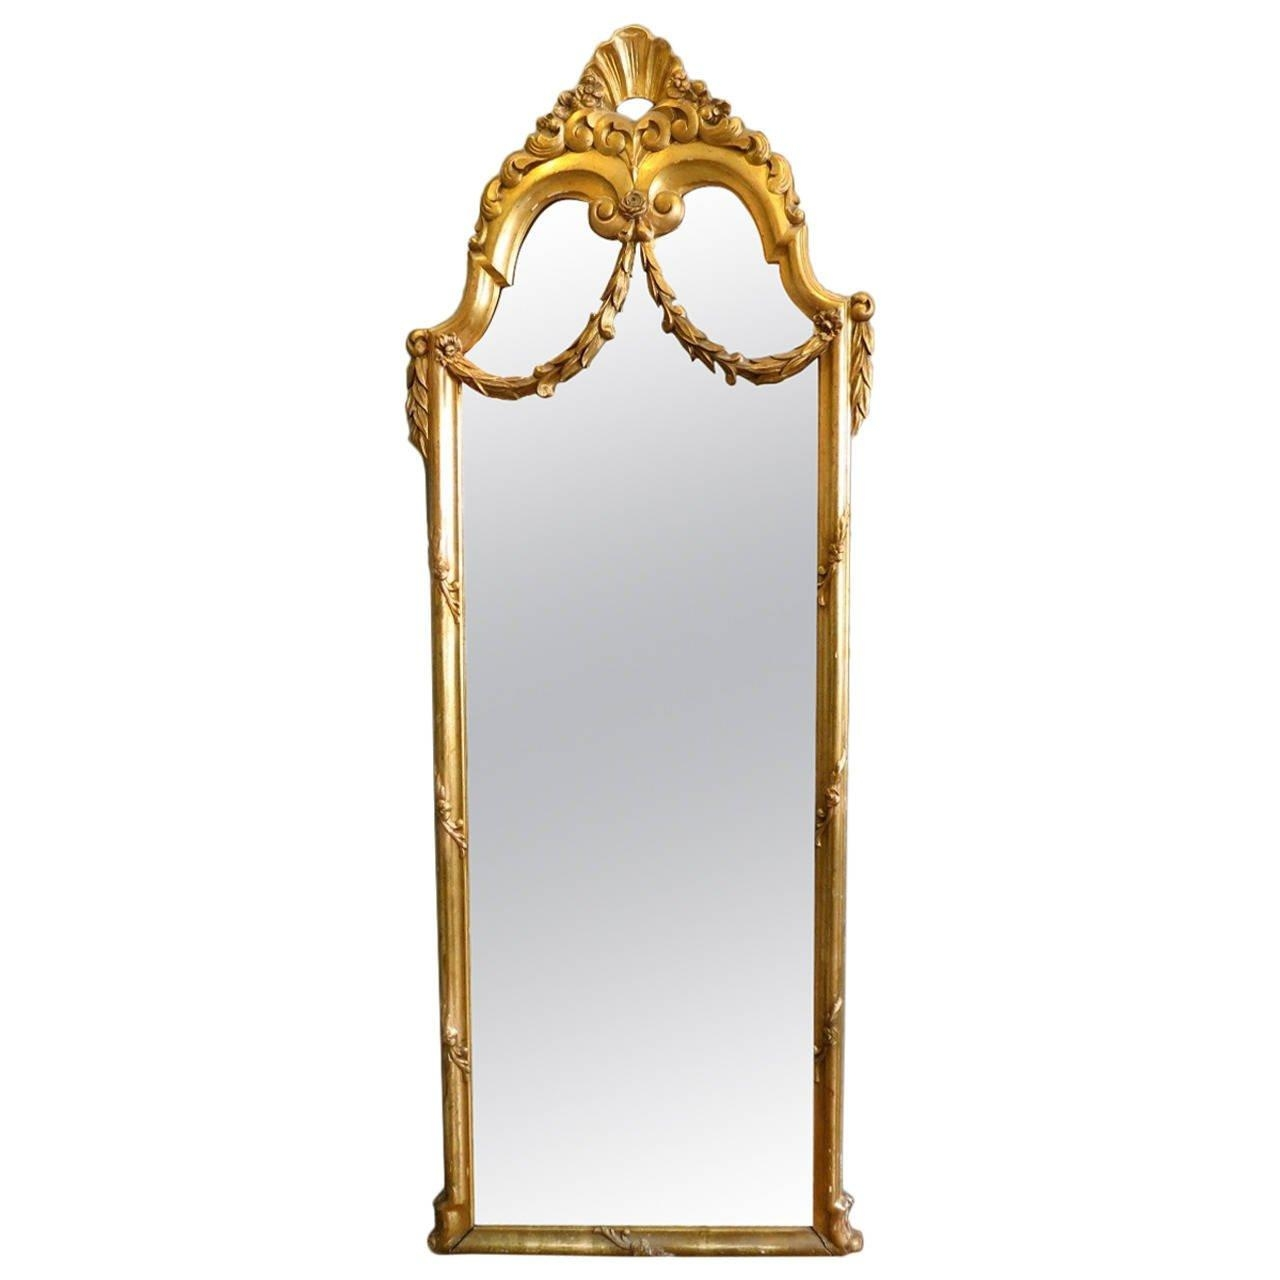 Antique French Gold Gilt Floor Standing Mirror At 1Stdibs For Vintage Full Length Mirror (View 10 of 20)